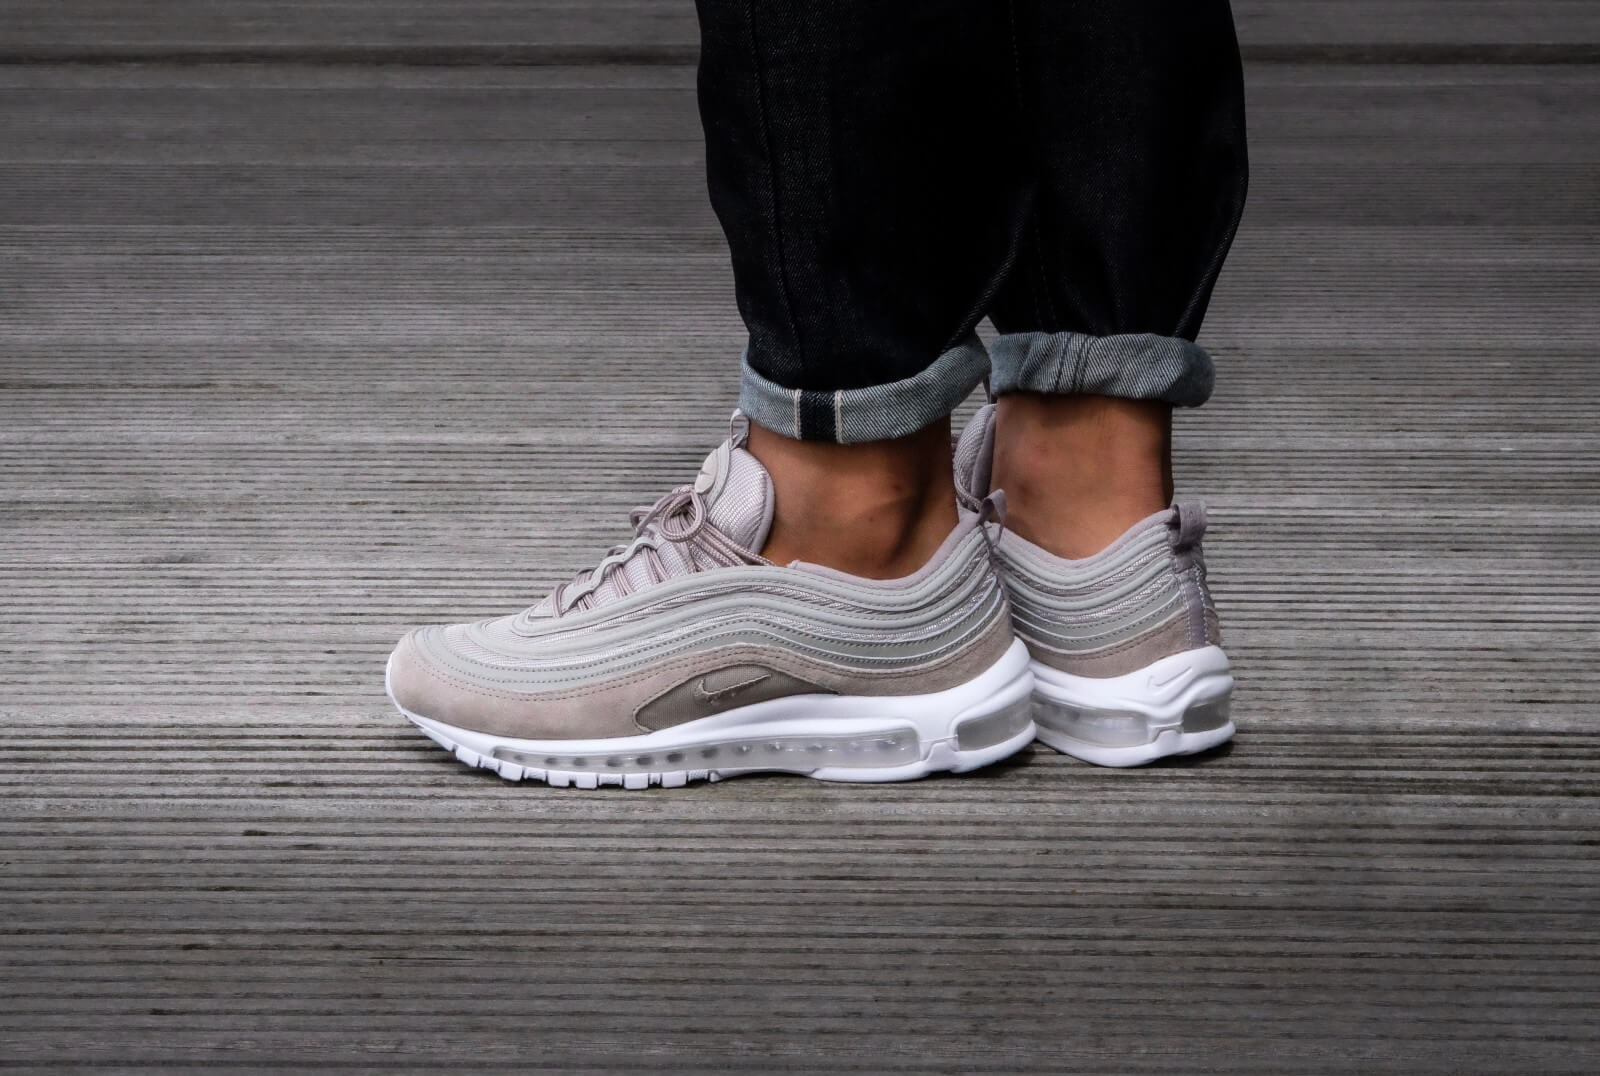 Nike Air Max 97 Cobblestone White 921826 002